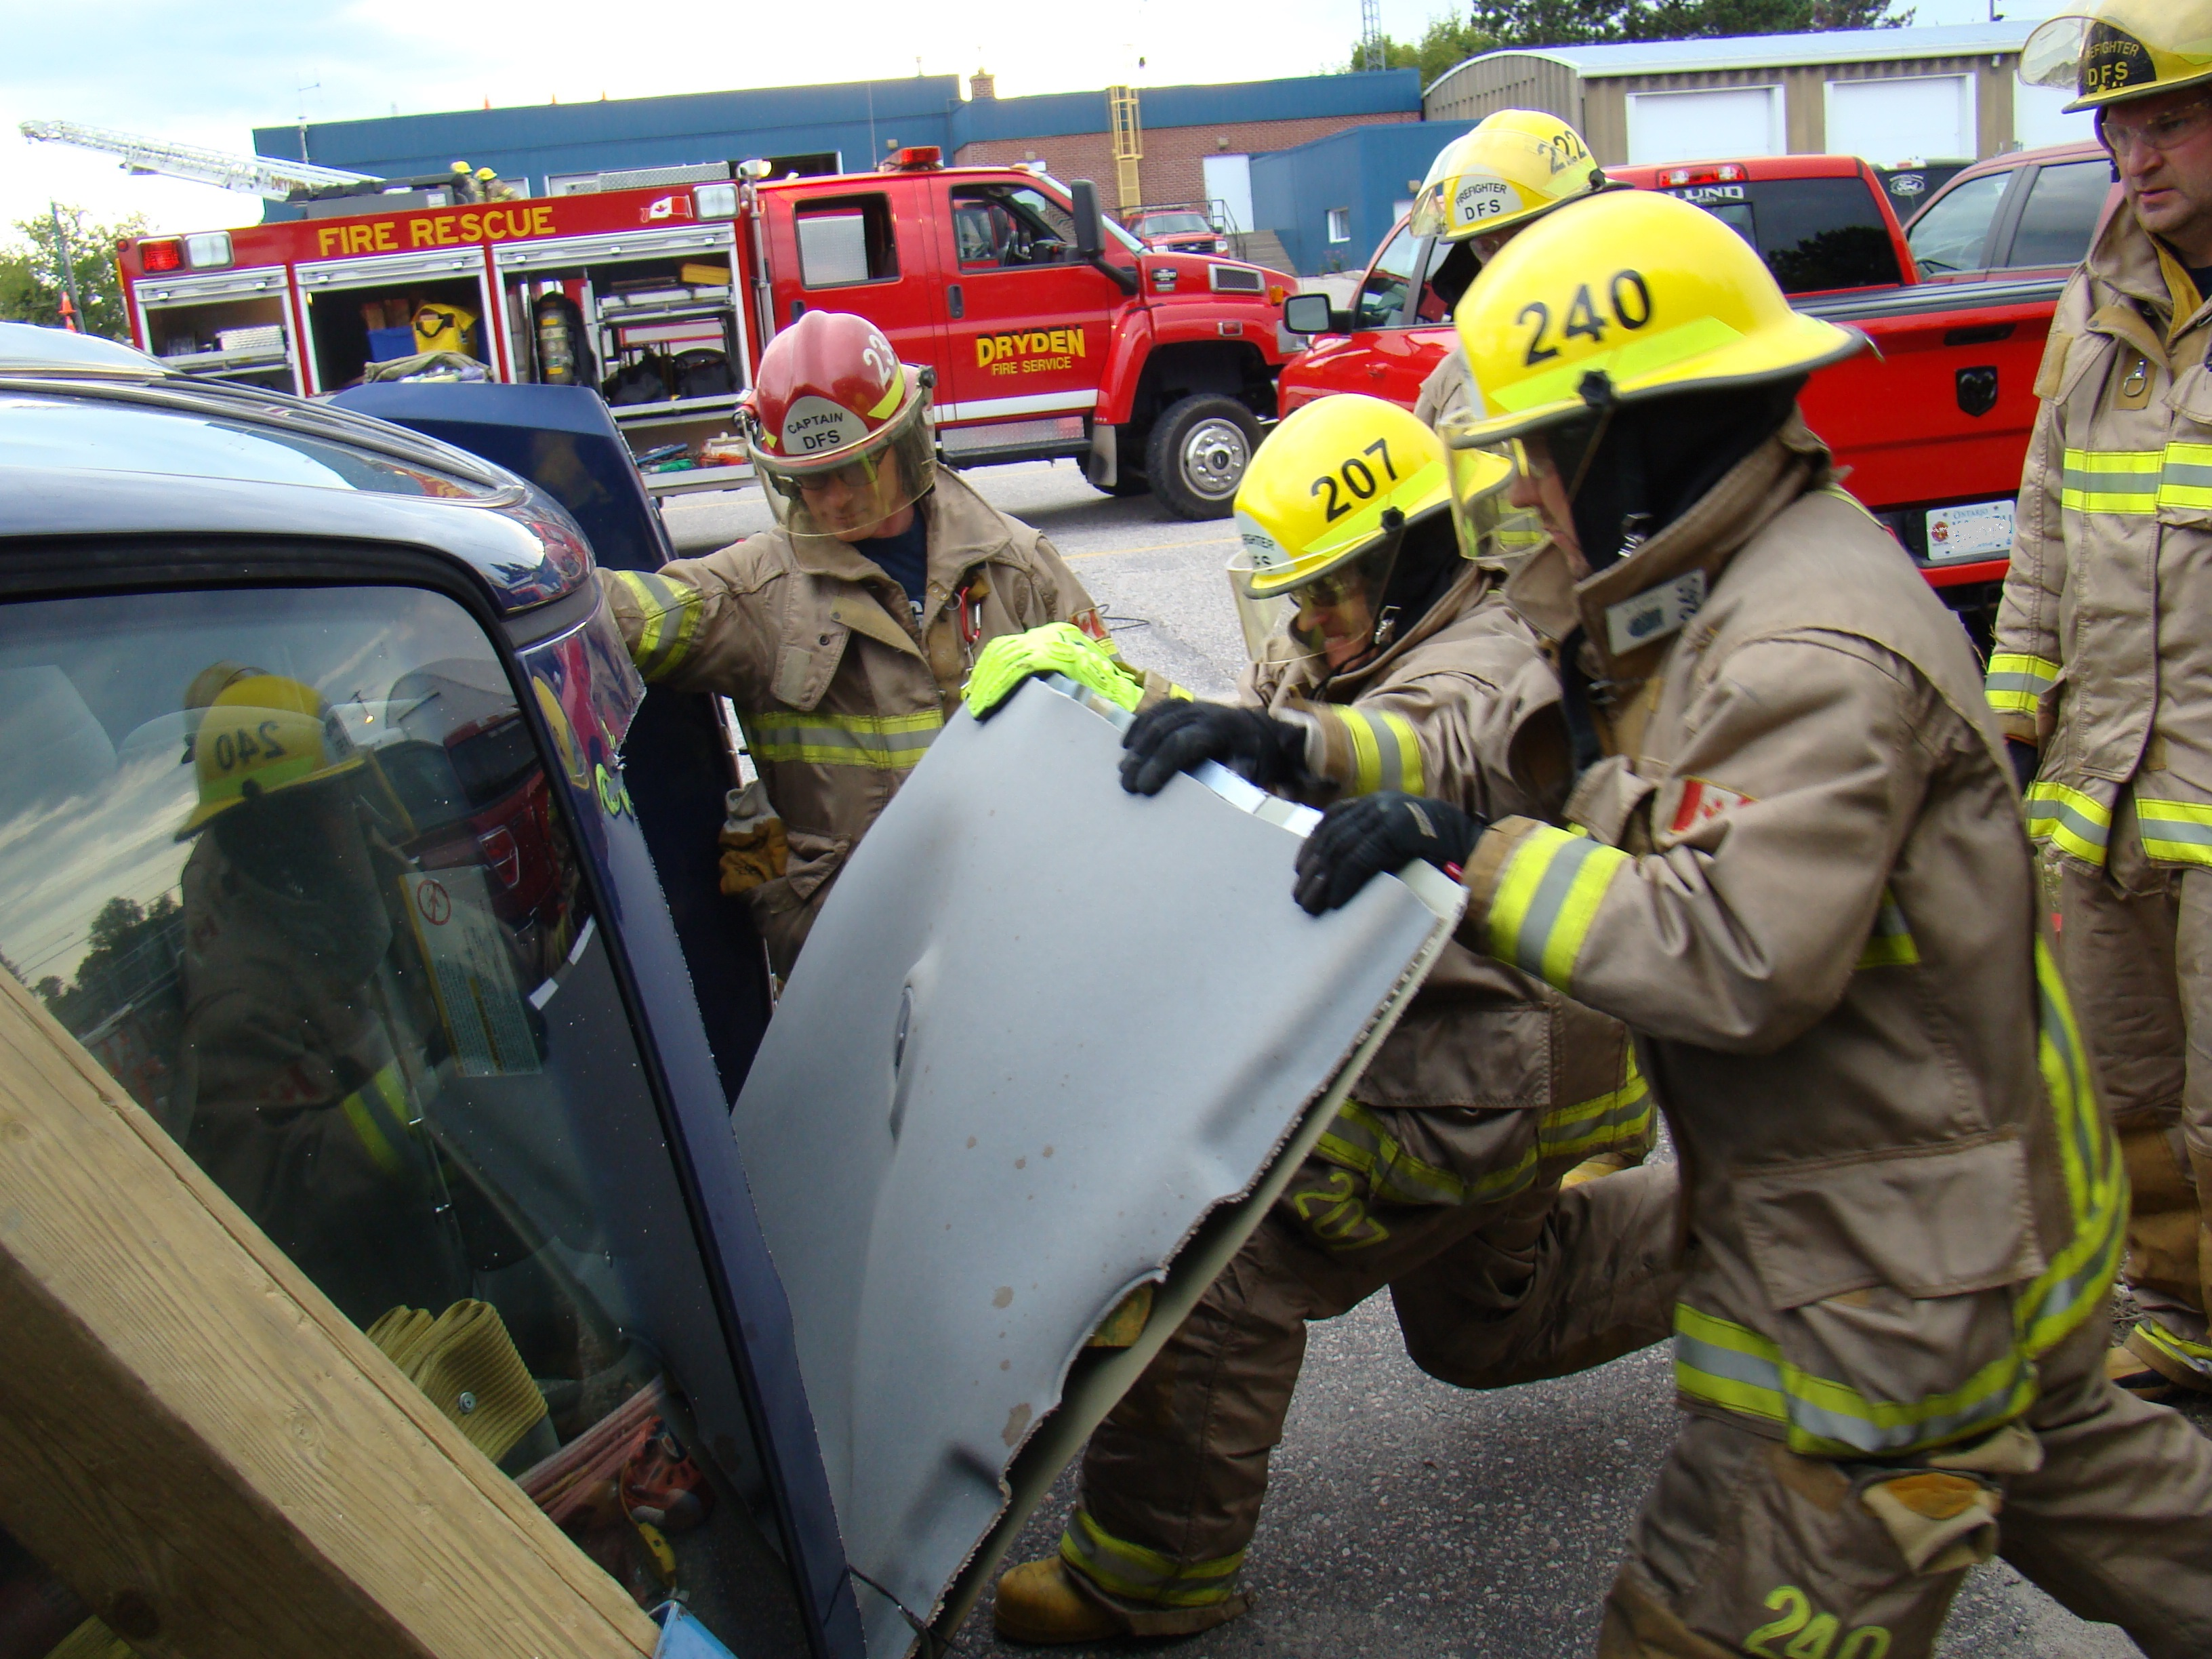 Photo of vehicle extrication training, car roof being removed